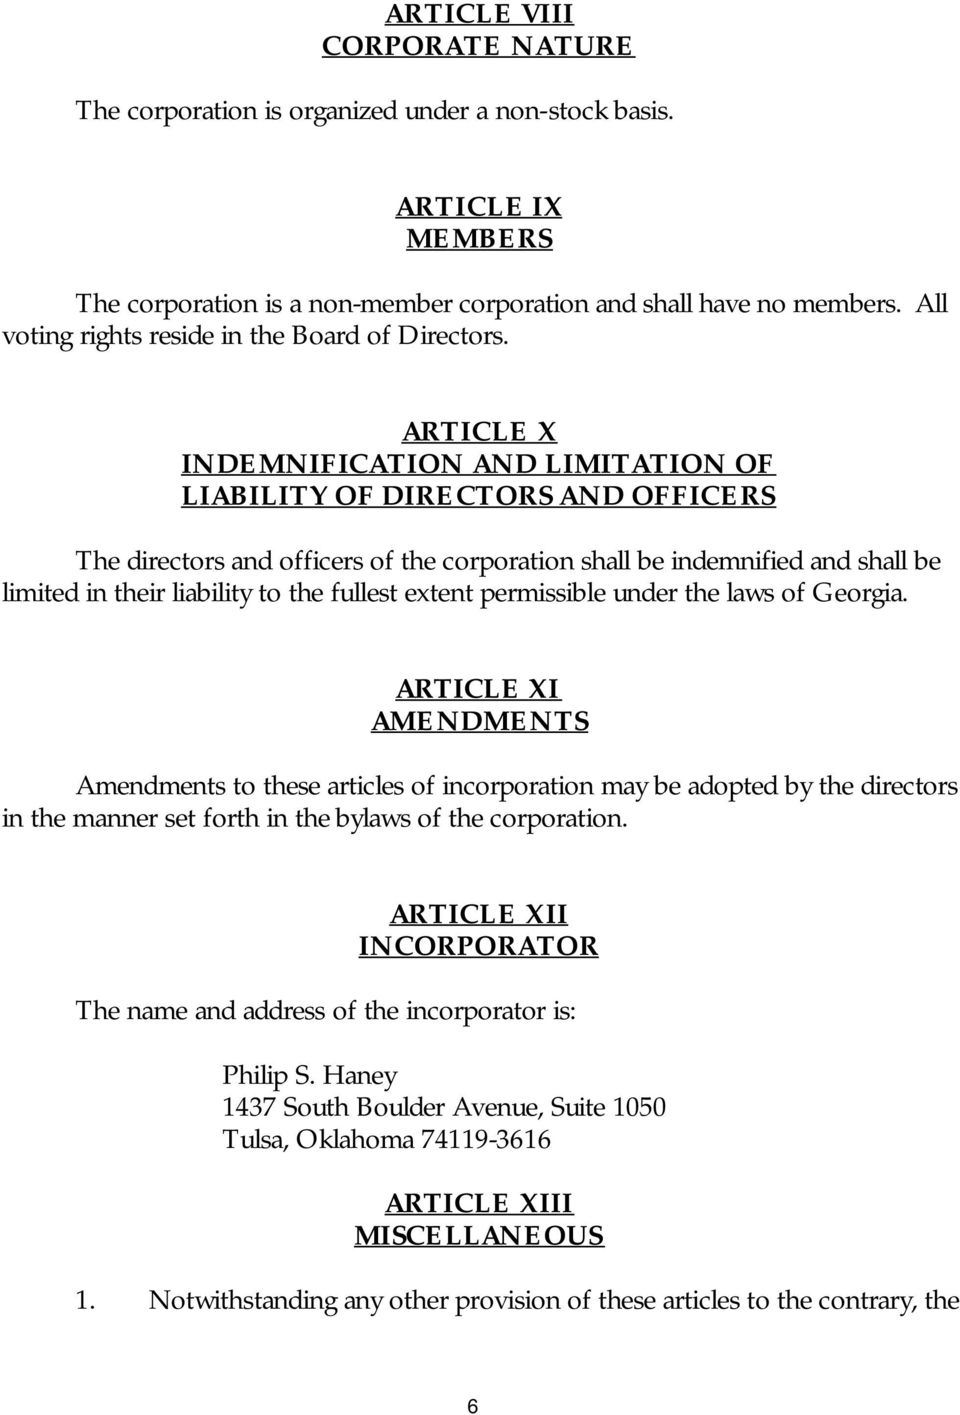 ARTICLE X INDEMNIFICATION AND LIMITATION OF LIABILITY OF DIRECTORS AND OFFICERS The directors and officers of the corporation shall be indemnified and shall be limited in their liability to the